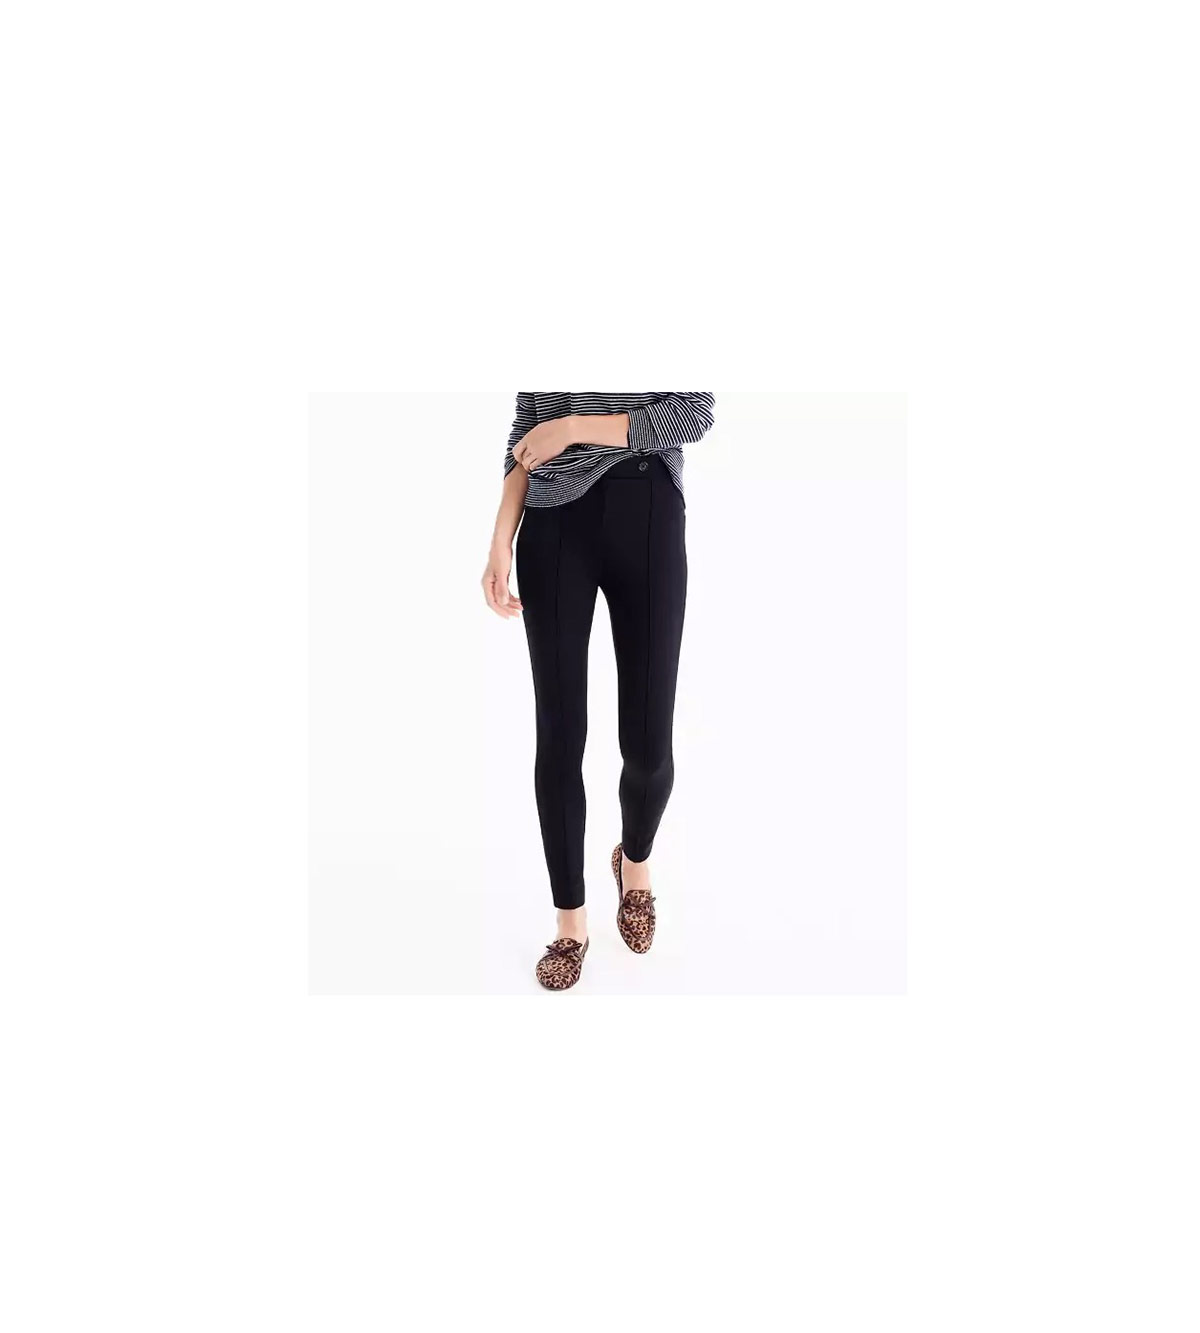 Tallbutton-front Any Day Pant in Stretch Ponte